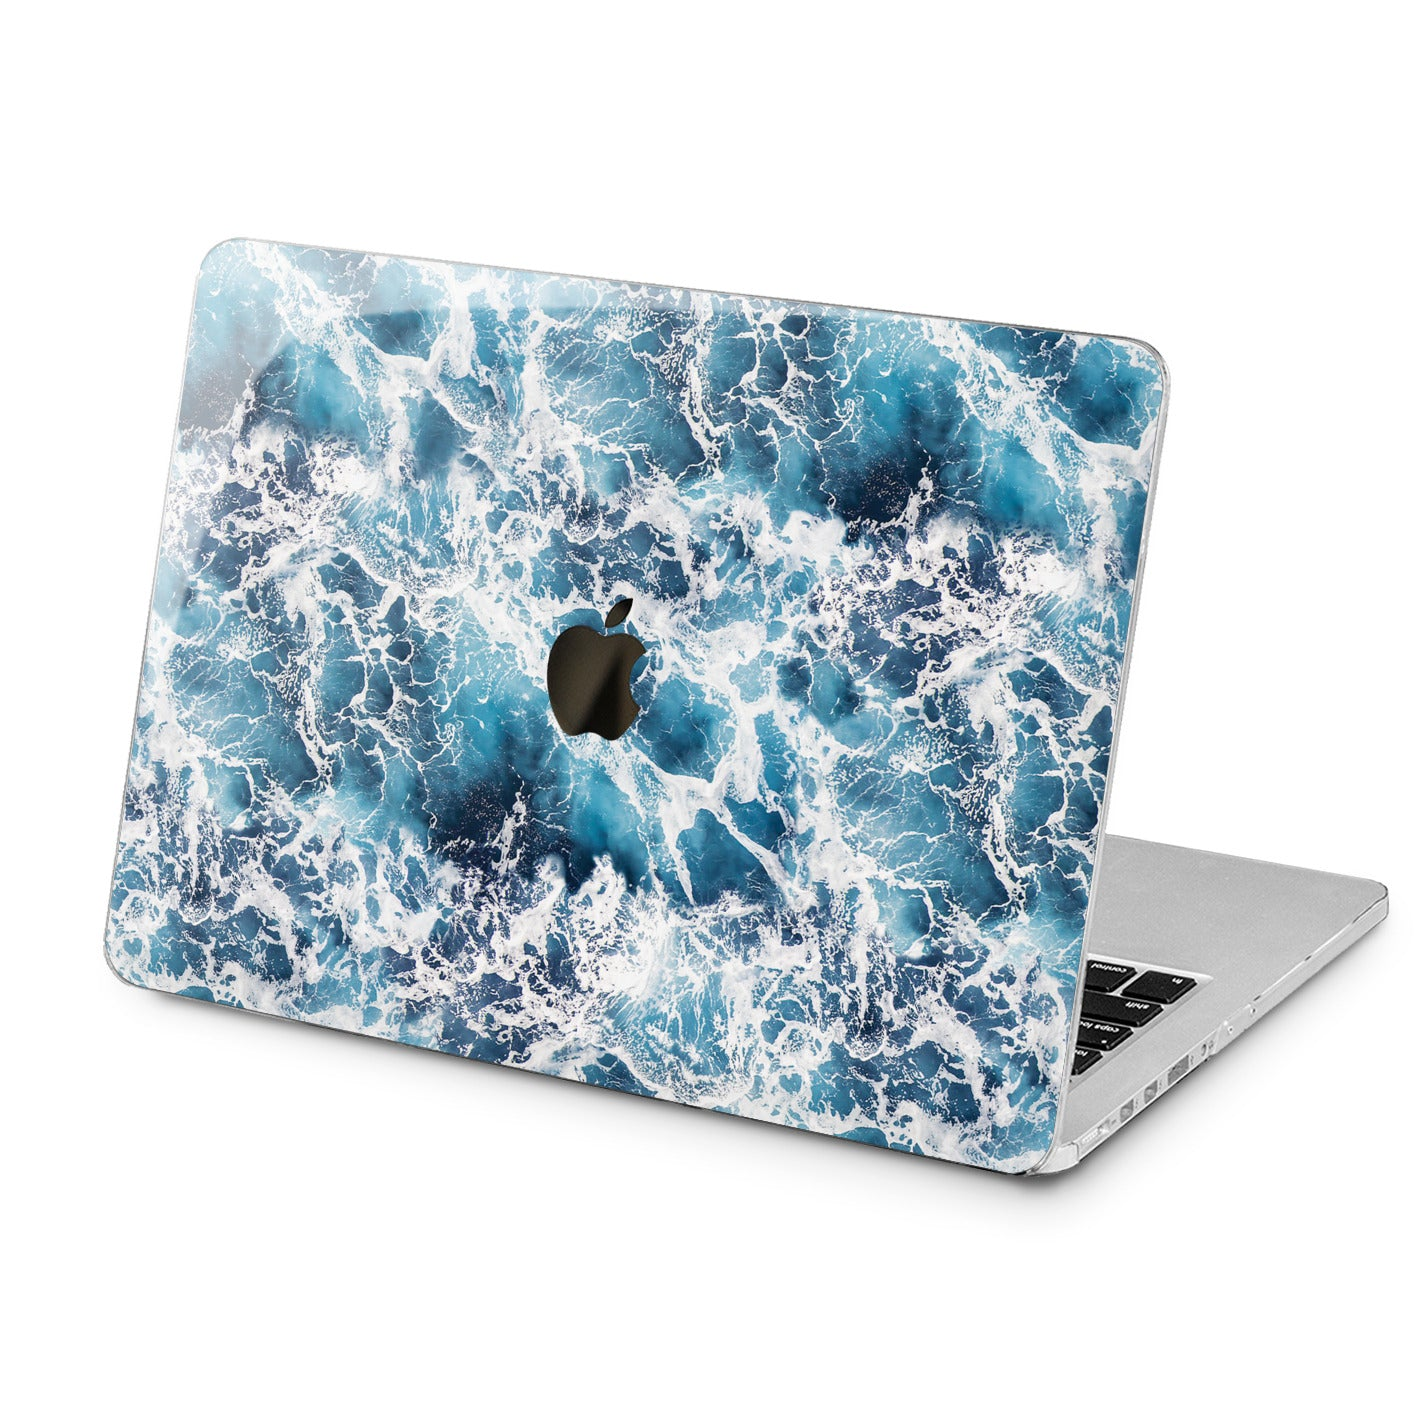 Lex Altern Lex Altern Ocean Waves Case for your Laptop Apple Macbook.